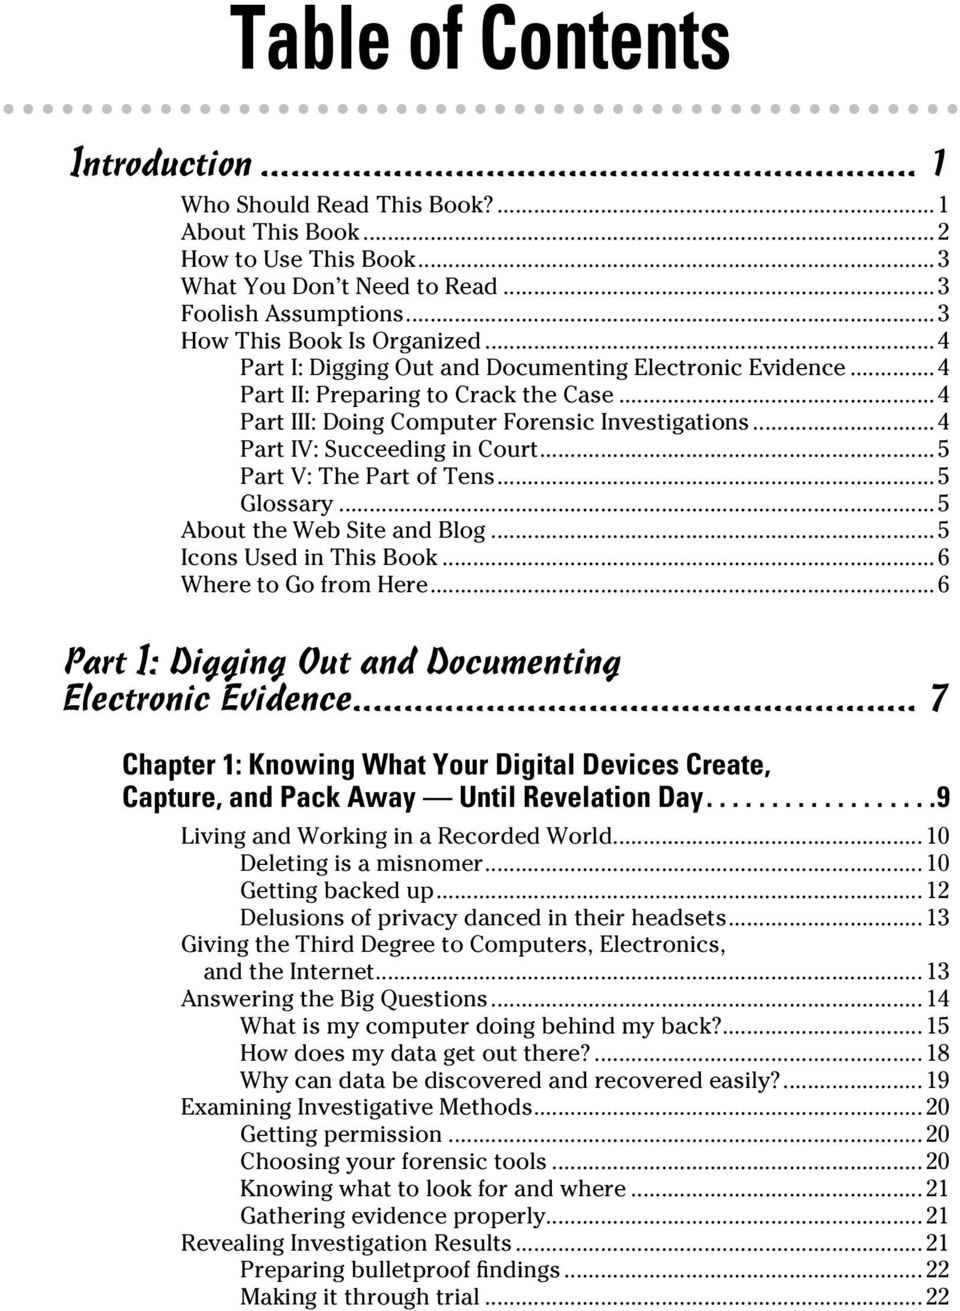 ..5 Part V: The Part of Tens...5 Glossary...5 About the Web Site and Blog...5 Icons Used in This Book...6 Where to Go from Here...6 Part I: Digging Out and Documenting Electronic Evidence.